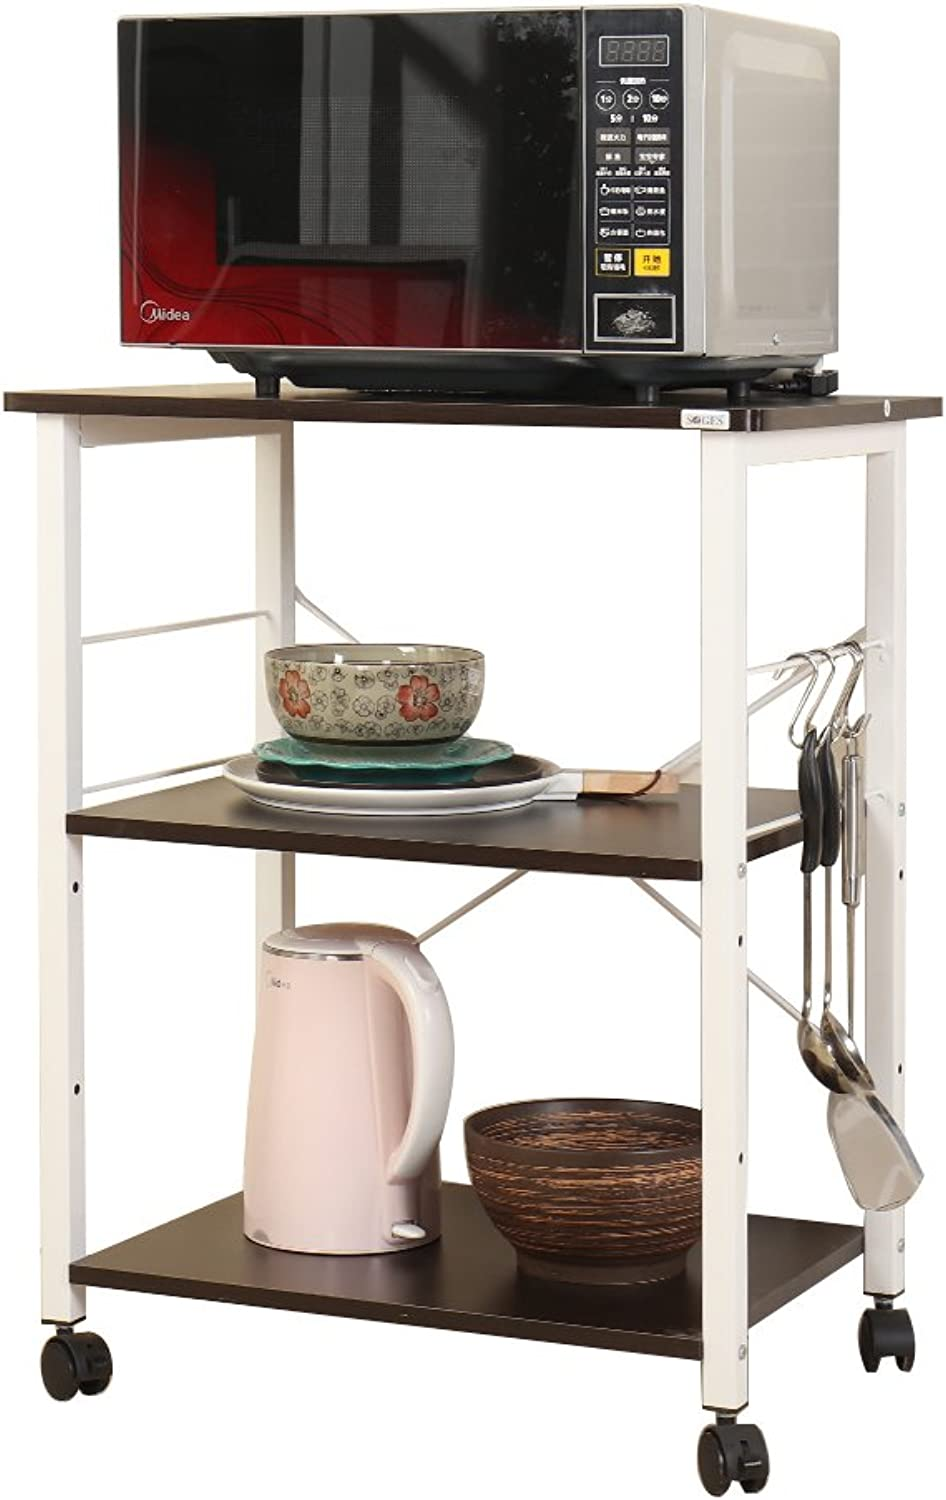 Soges 2-Tier Microwave Cart Utility Cart with Wheel Microwave Stand Kitchen Baker's Rack Utility, W4-H